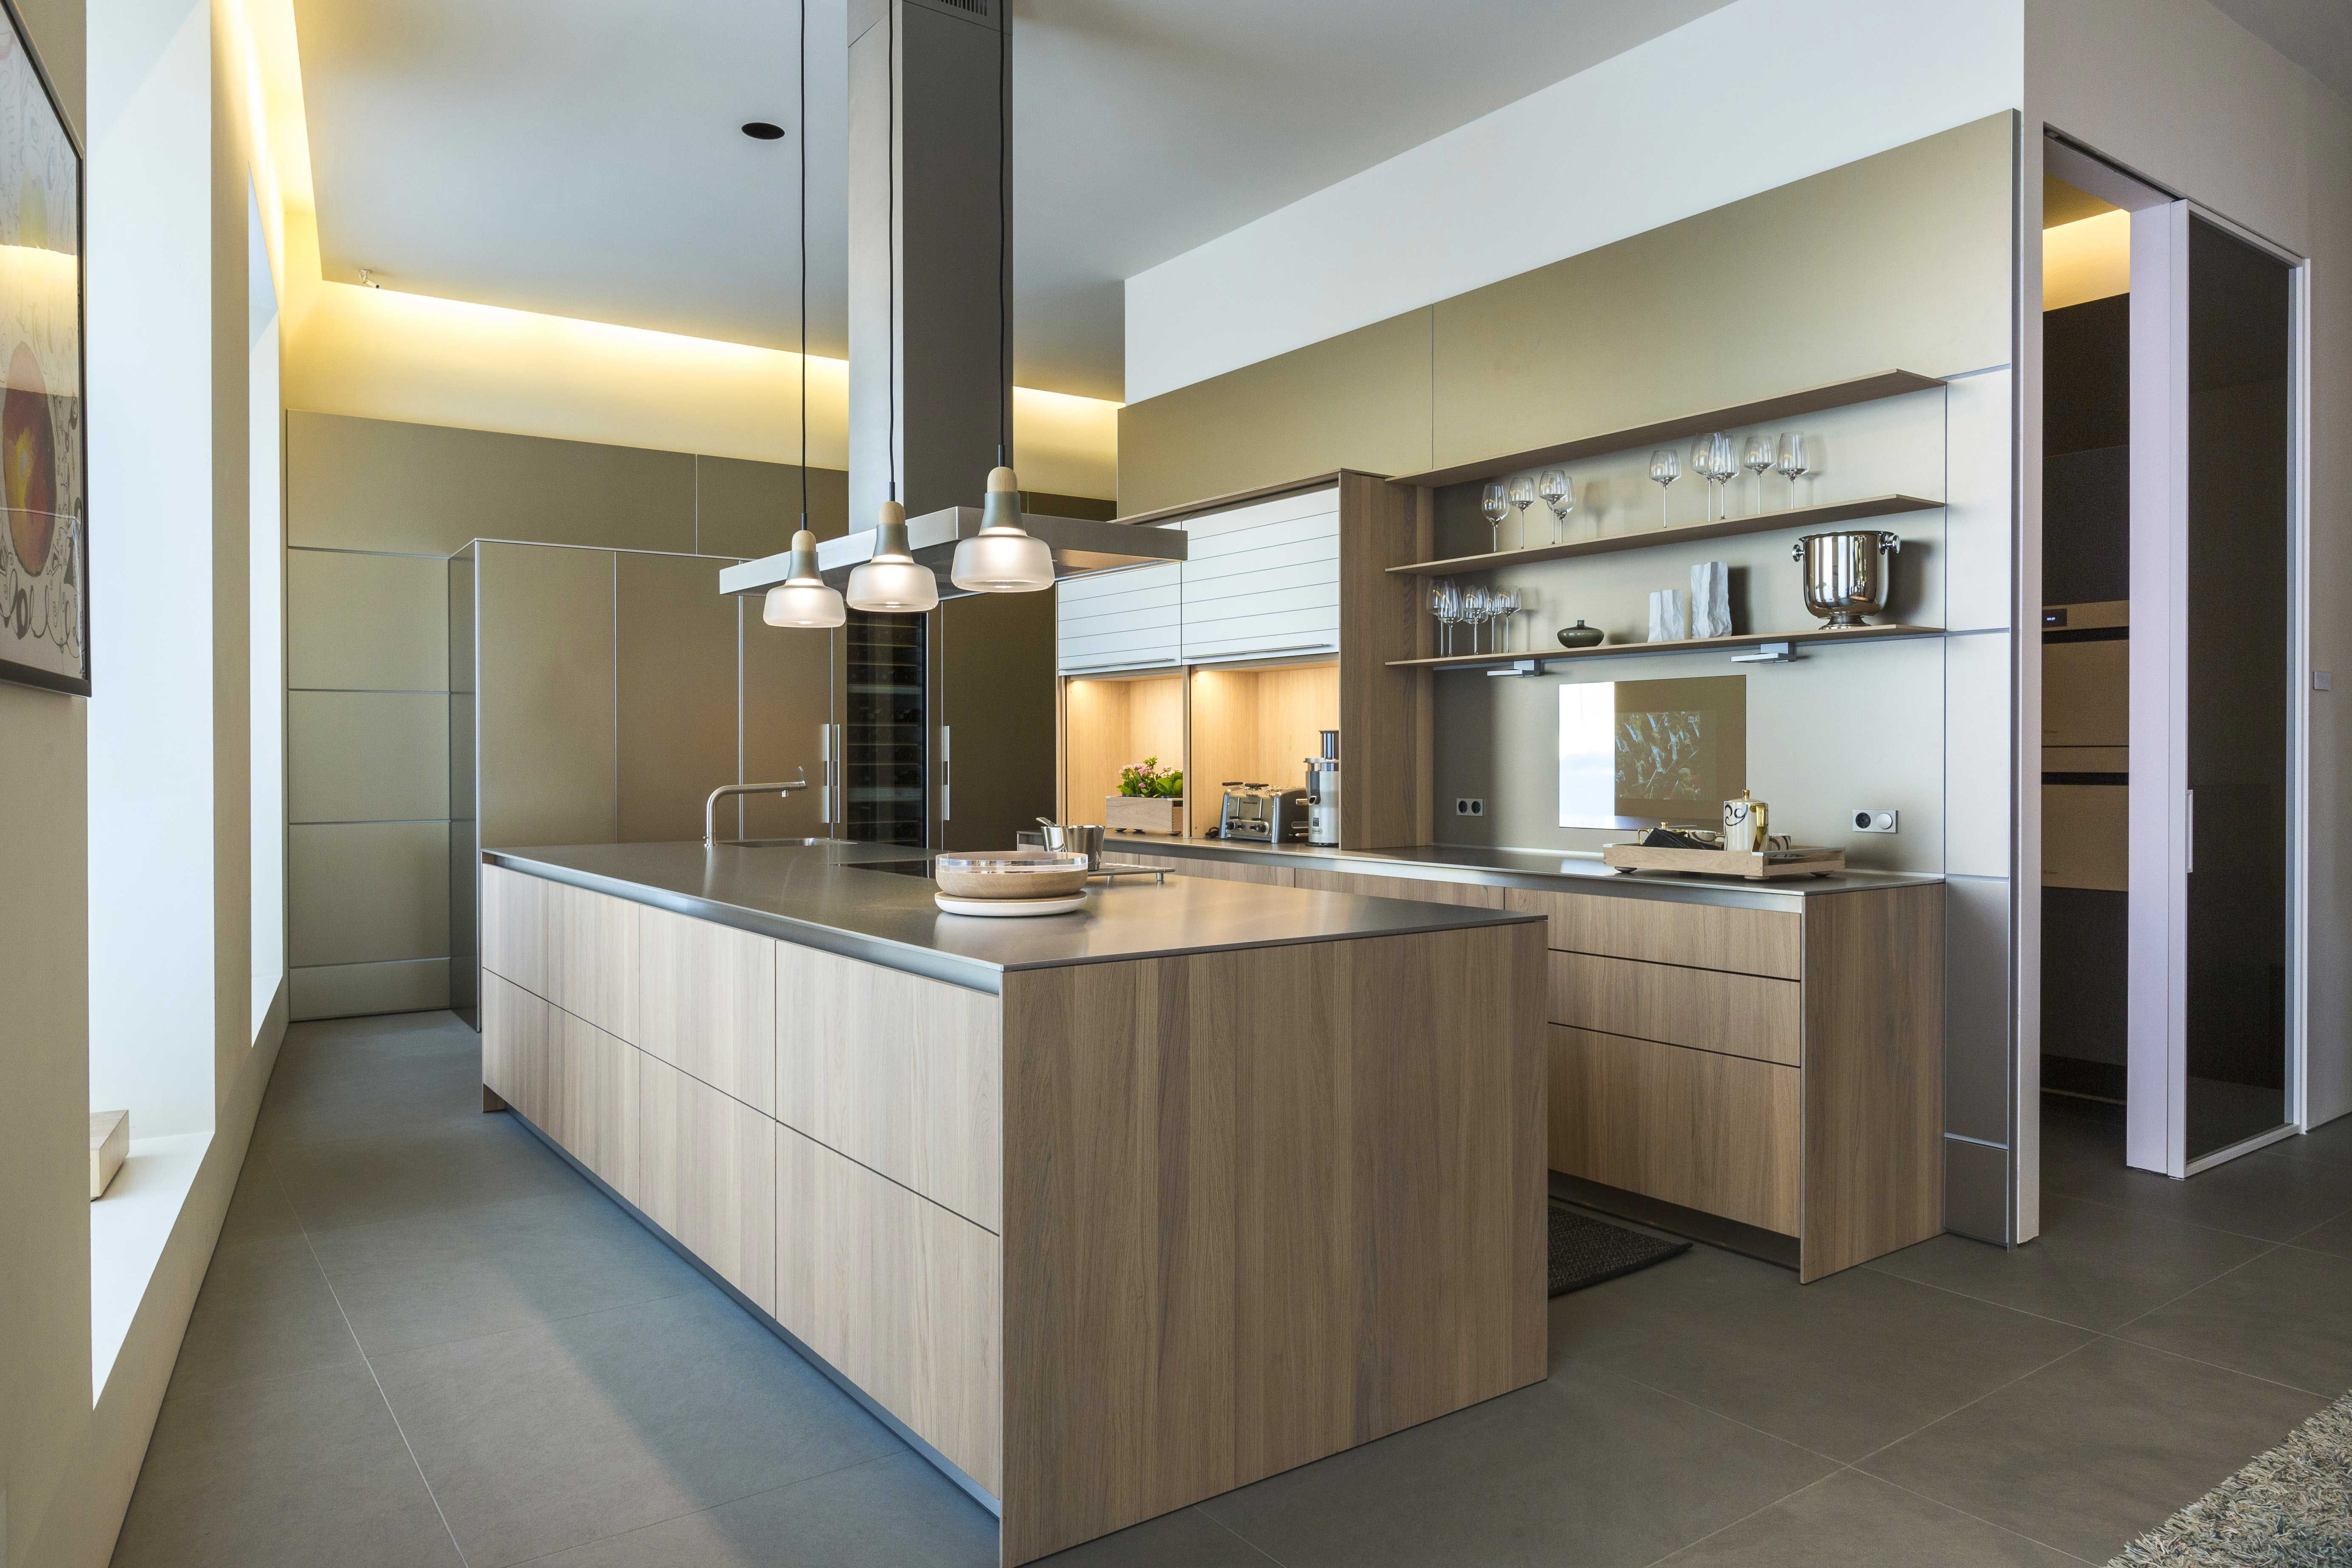 Perfect Cost Of Bulthaup B3 Kitchen And Review in 2020